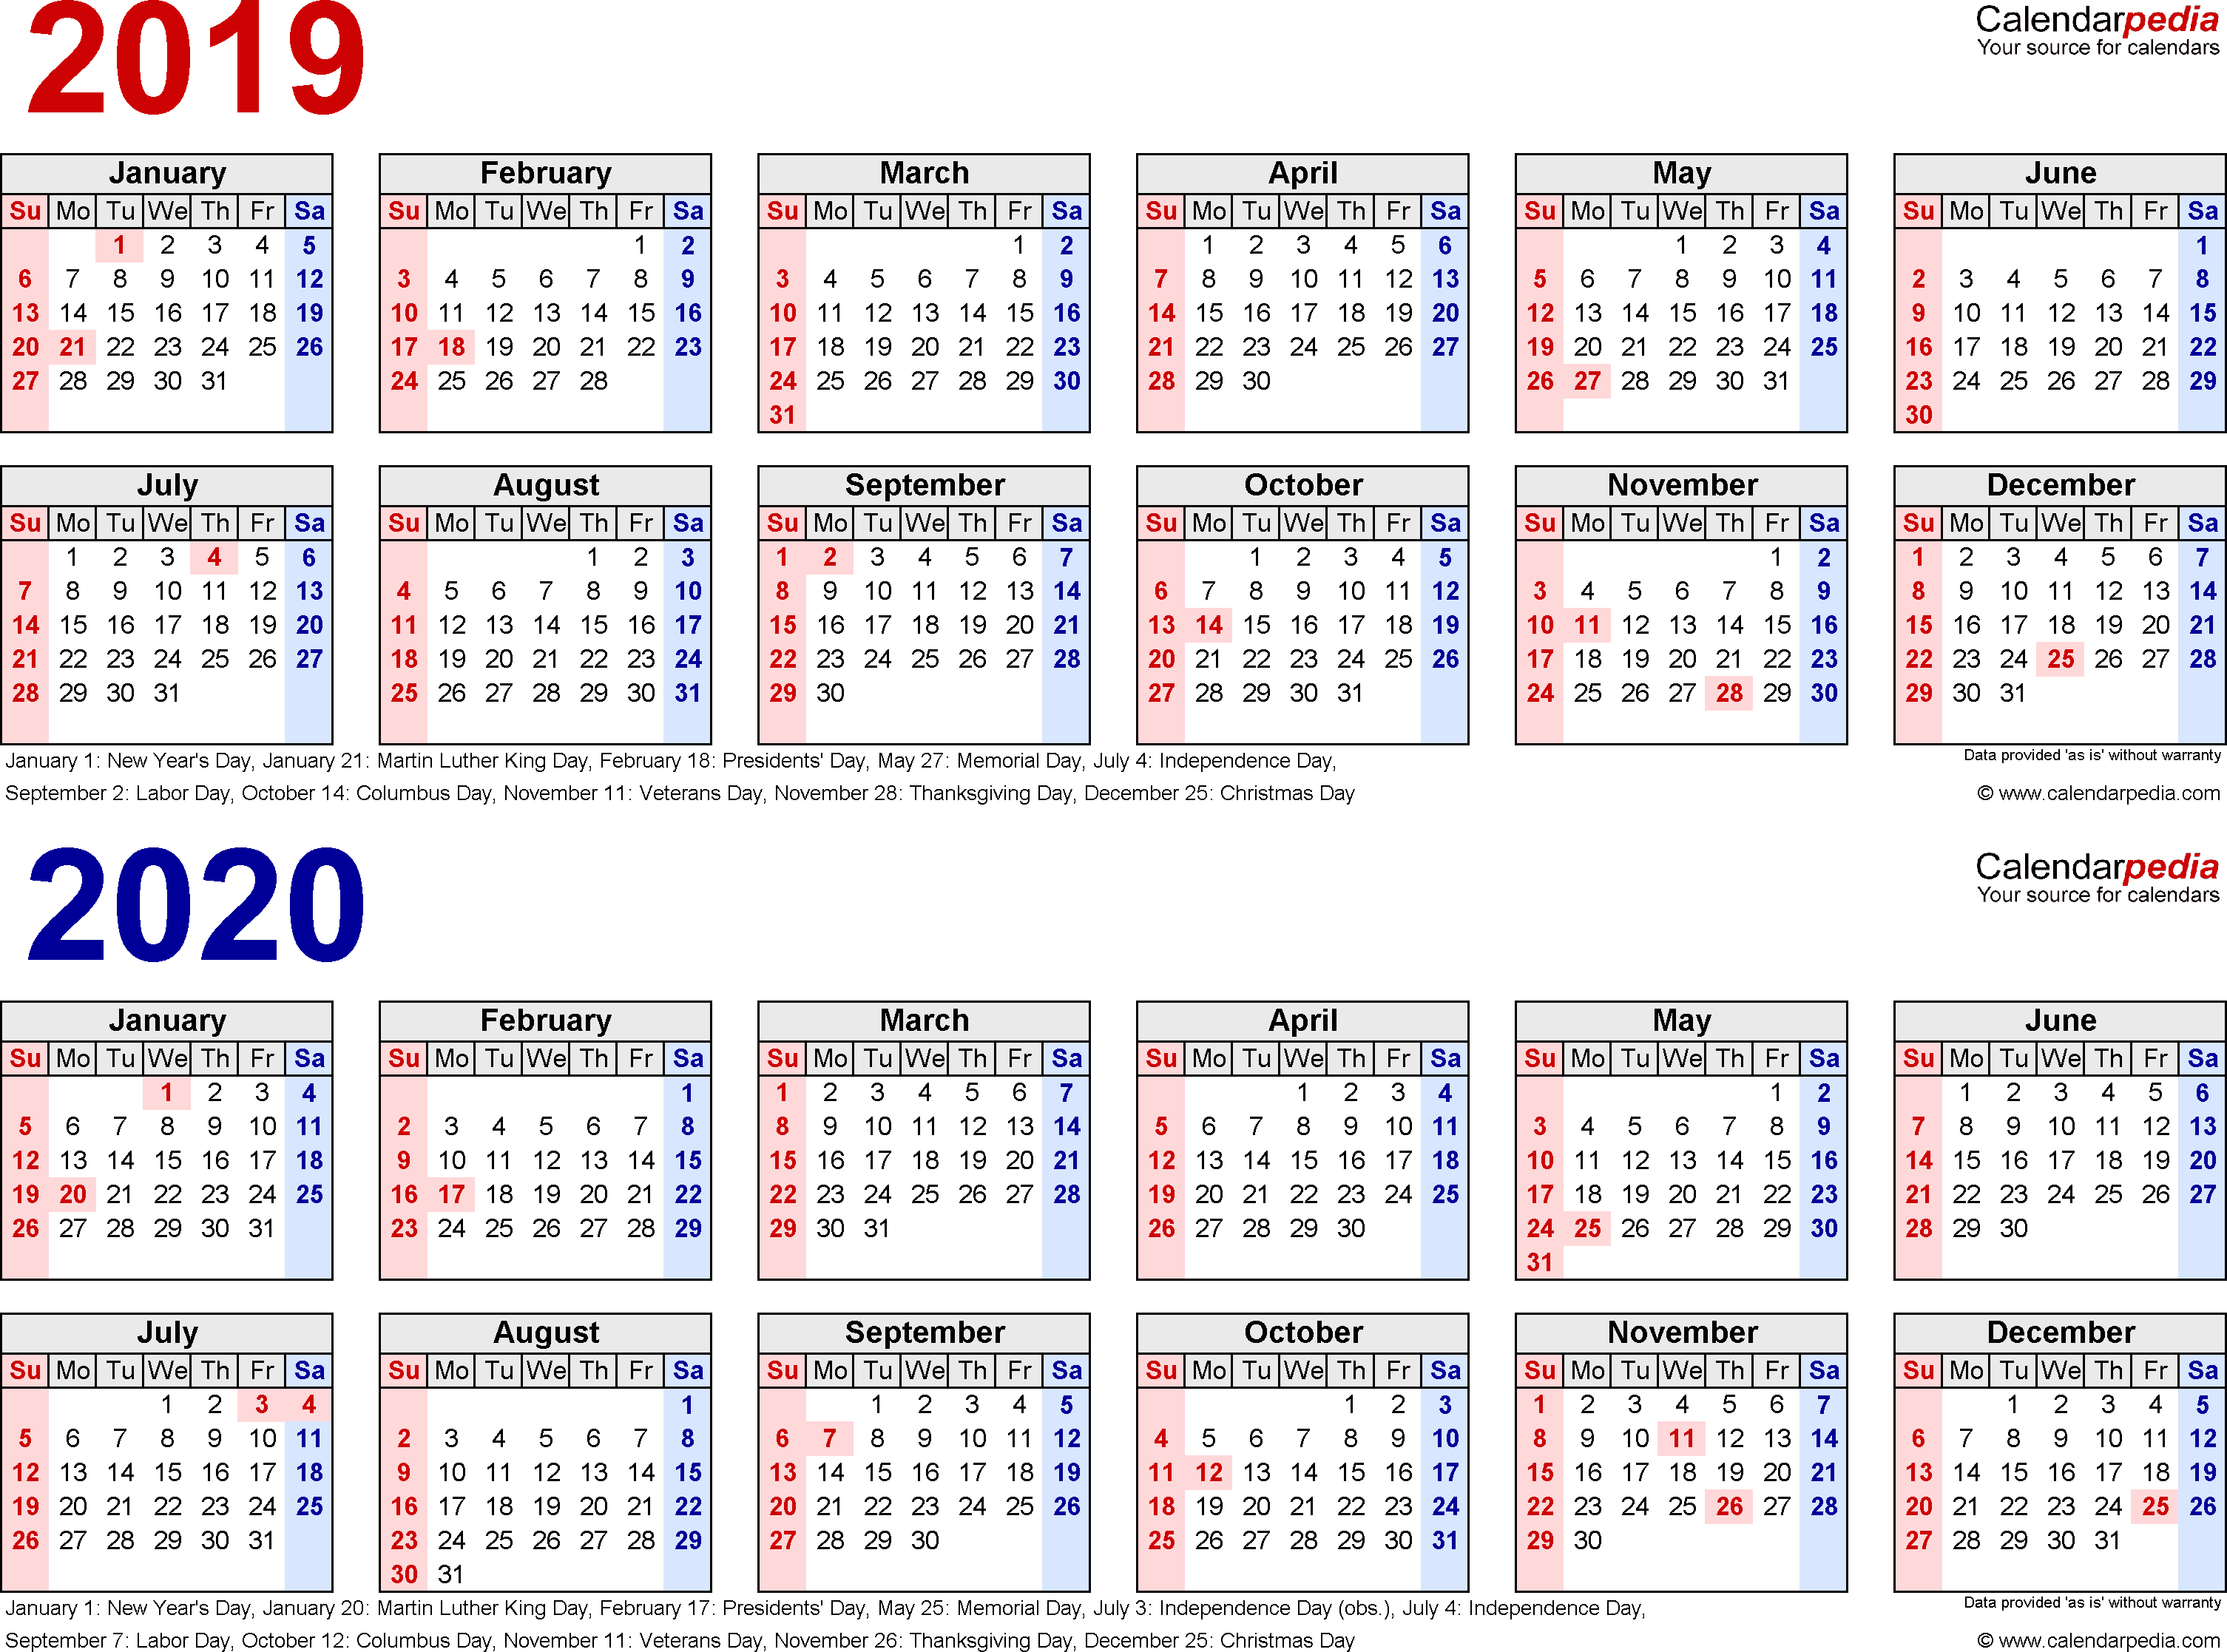 2019-2020 Calendar - Free Printable Two-Year Pdf Calendars within Printable Yearly Calendar June 2019-2020